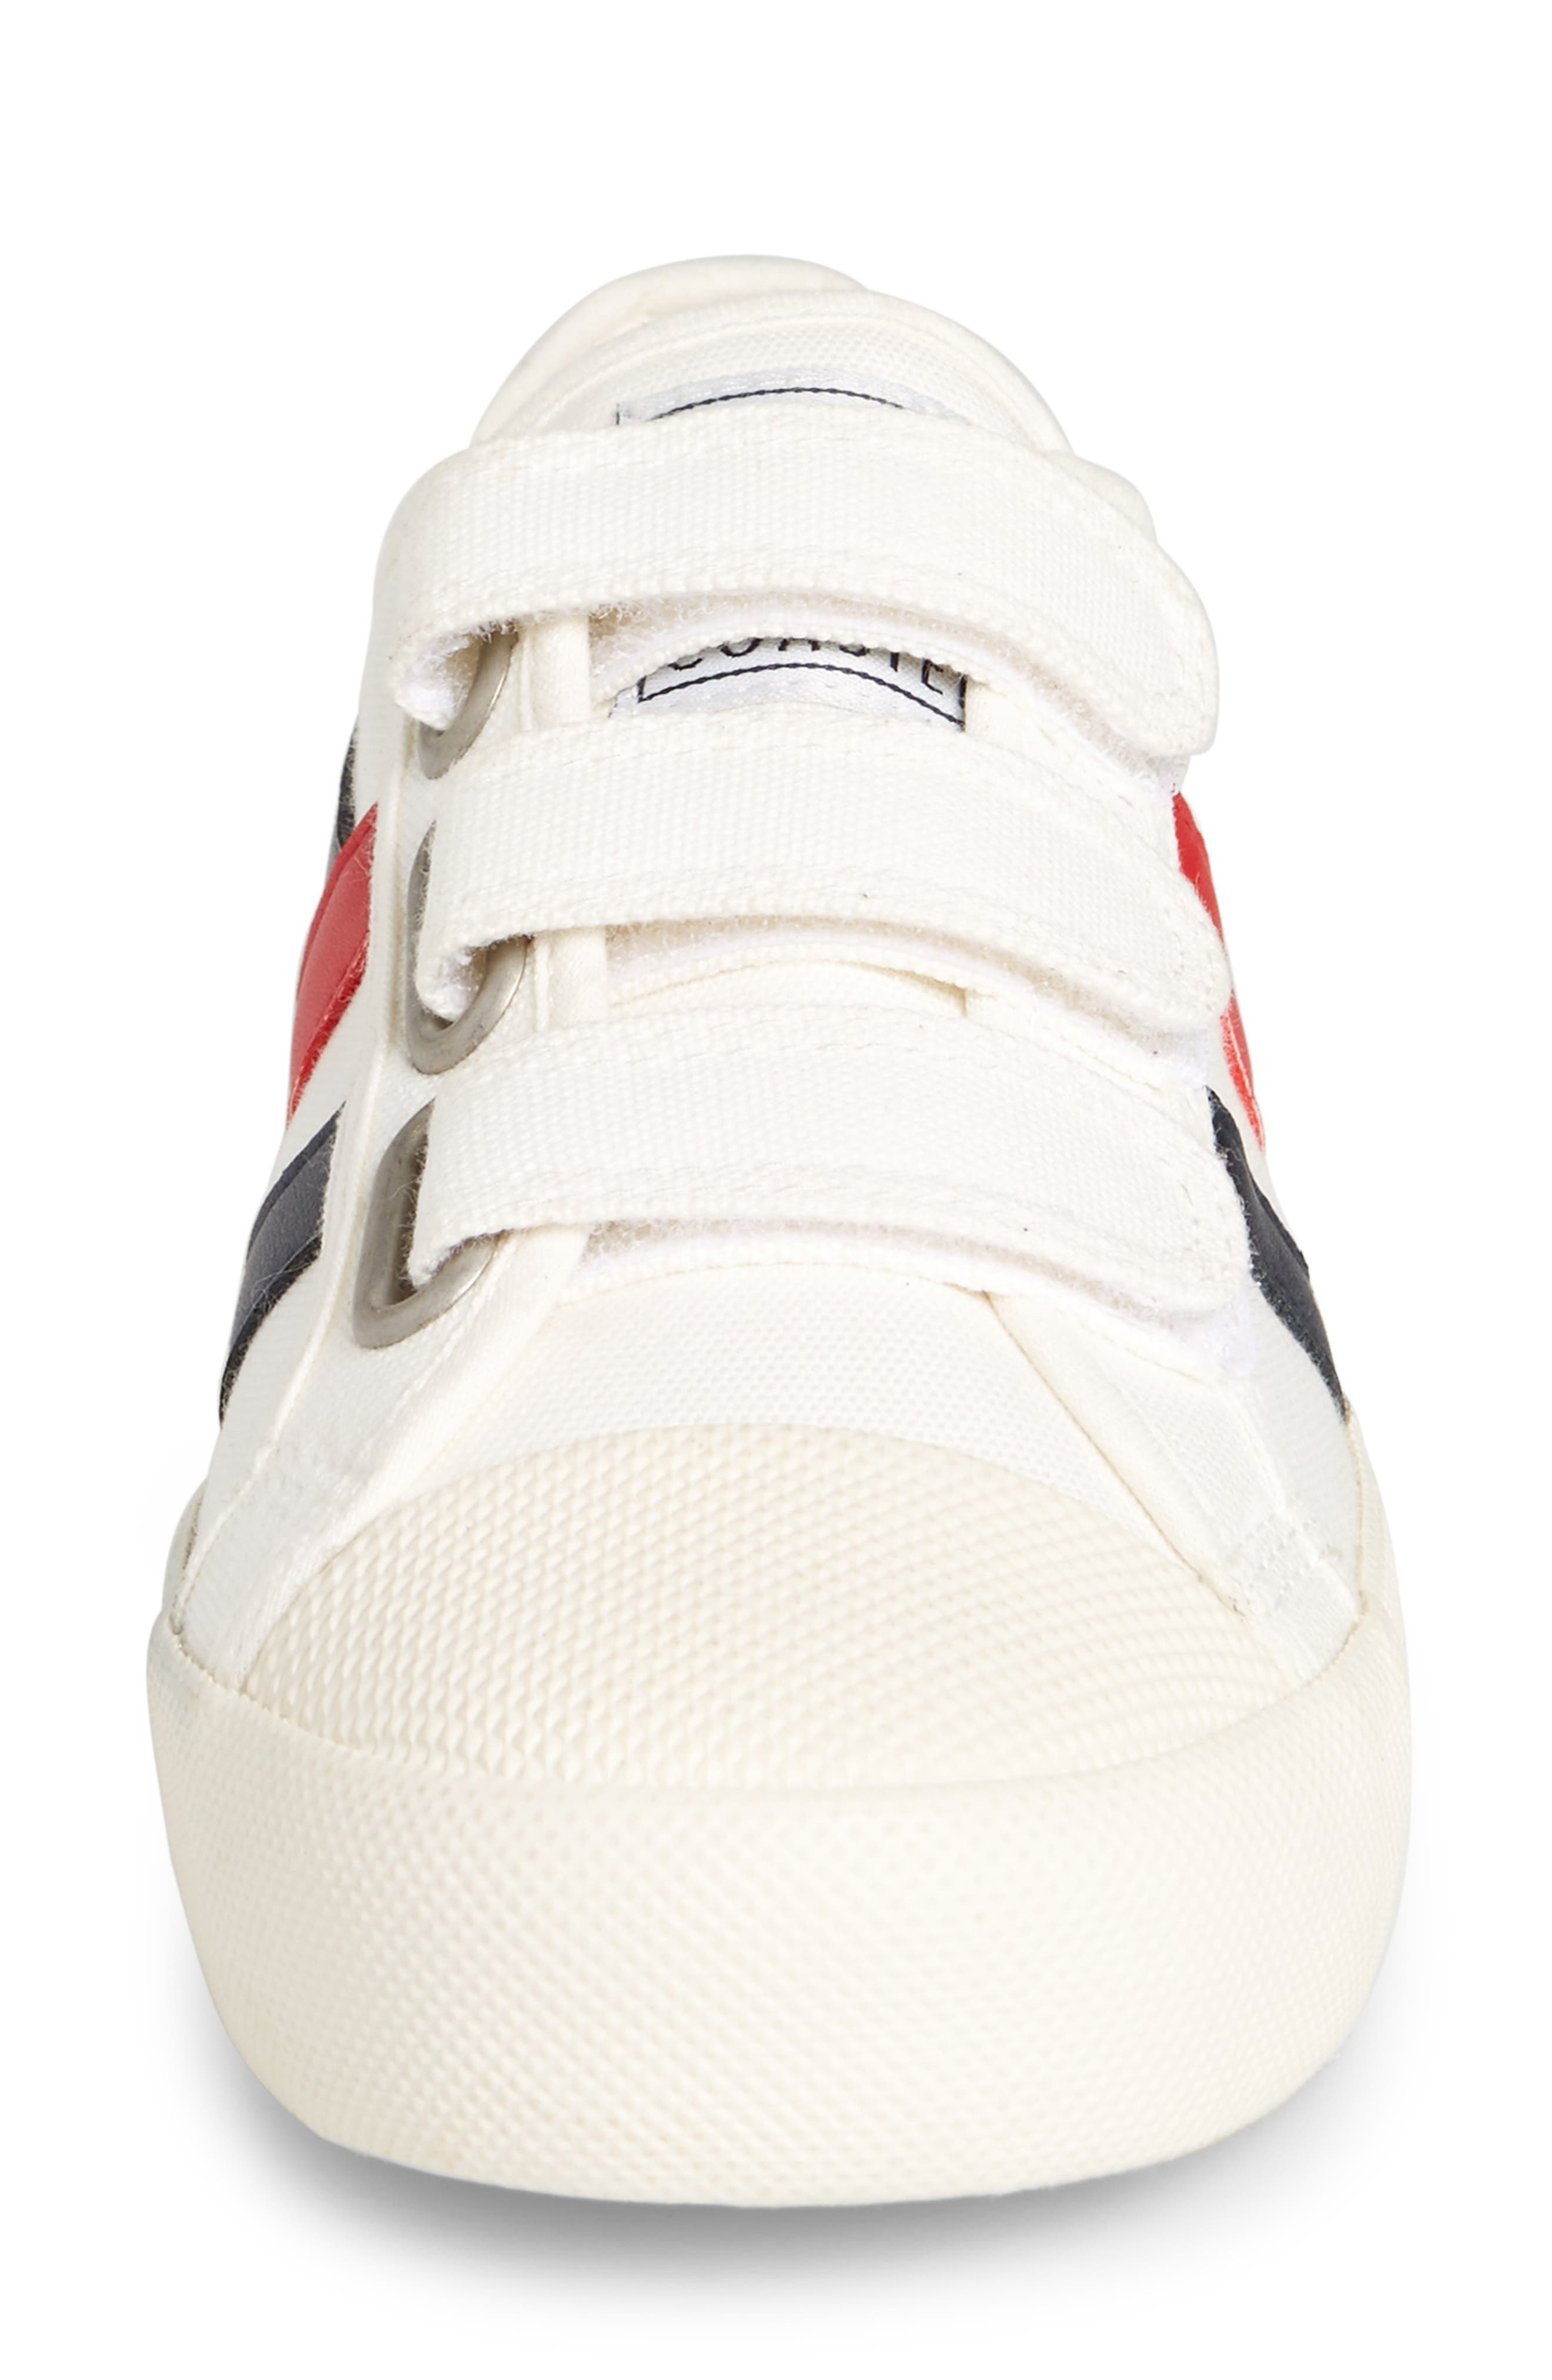 Coaster Low Top Sneaker,                             Alternate thumbnail 4, color,                             OFF WHITE/ NAVY/ RED